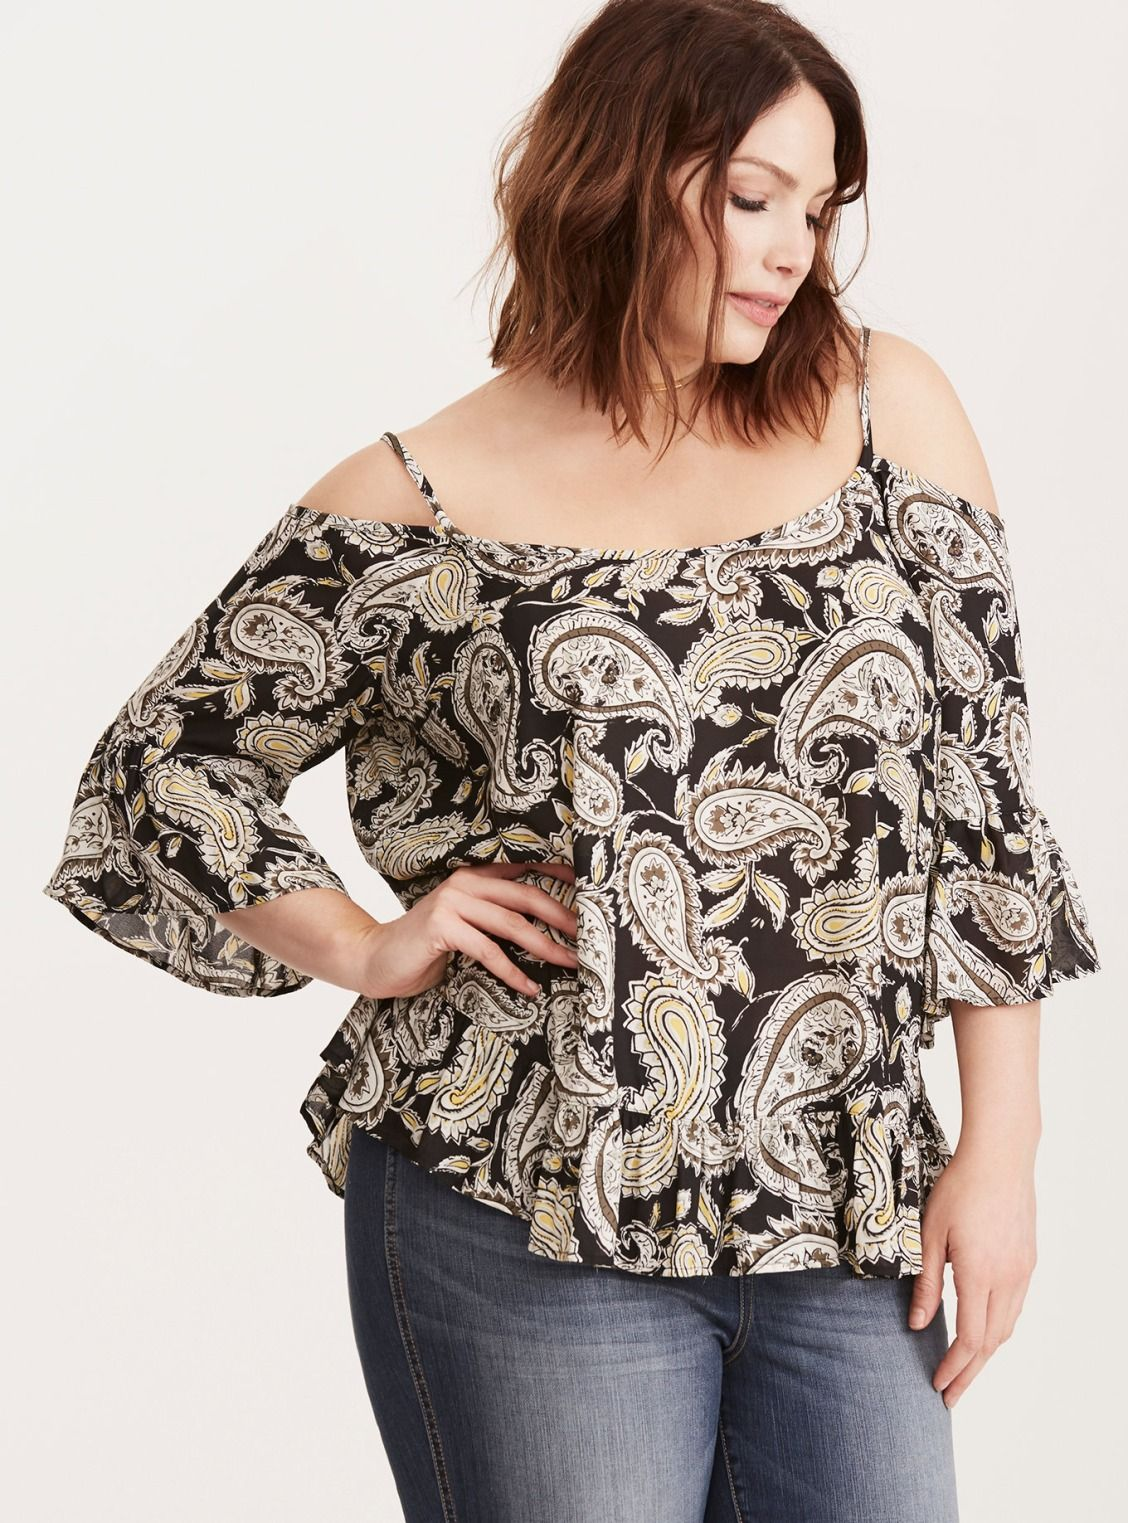 Paisley Print Crepe Ruffle Cold Shoulder Top/ Plus Size Clothing / TORRID